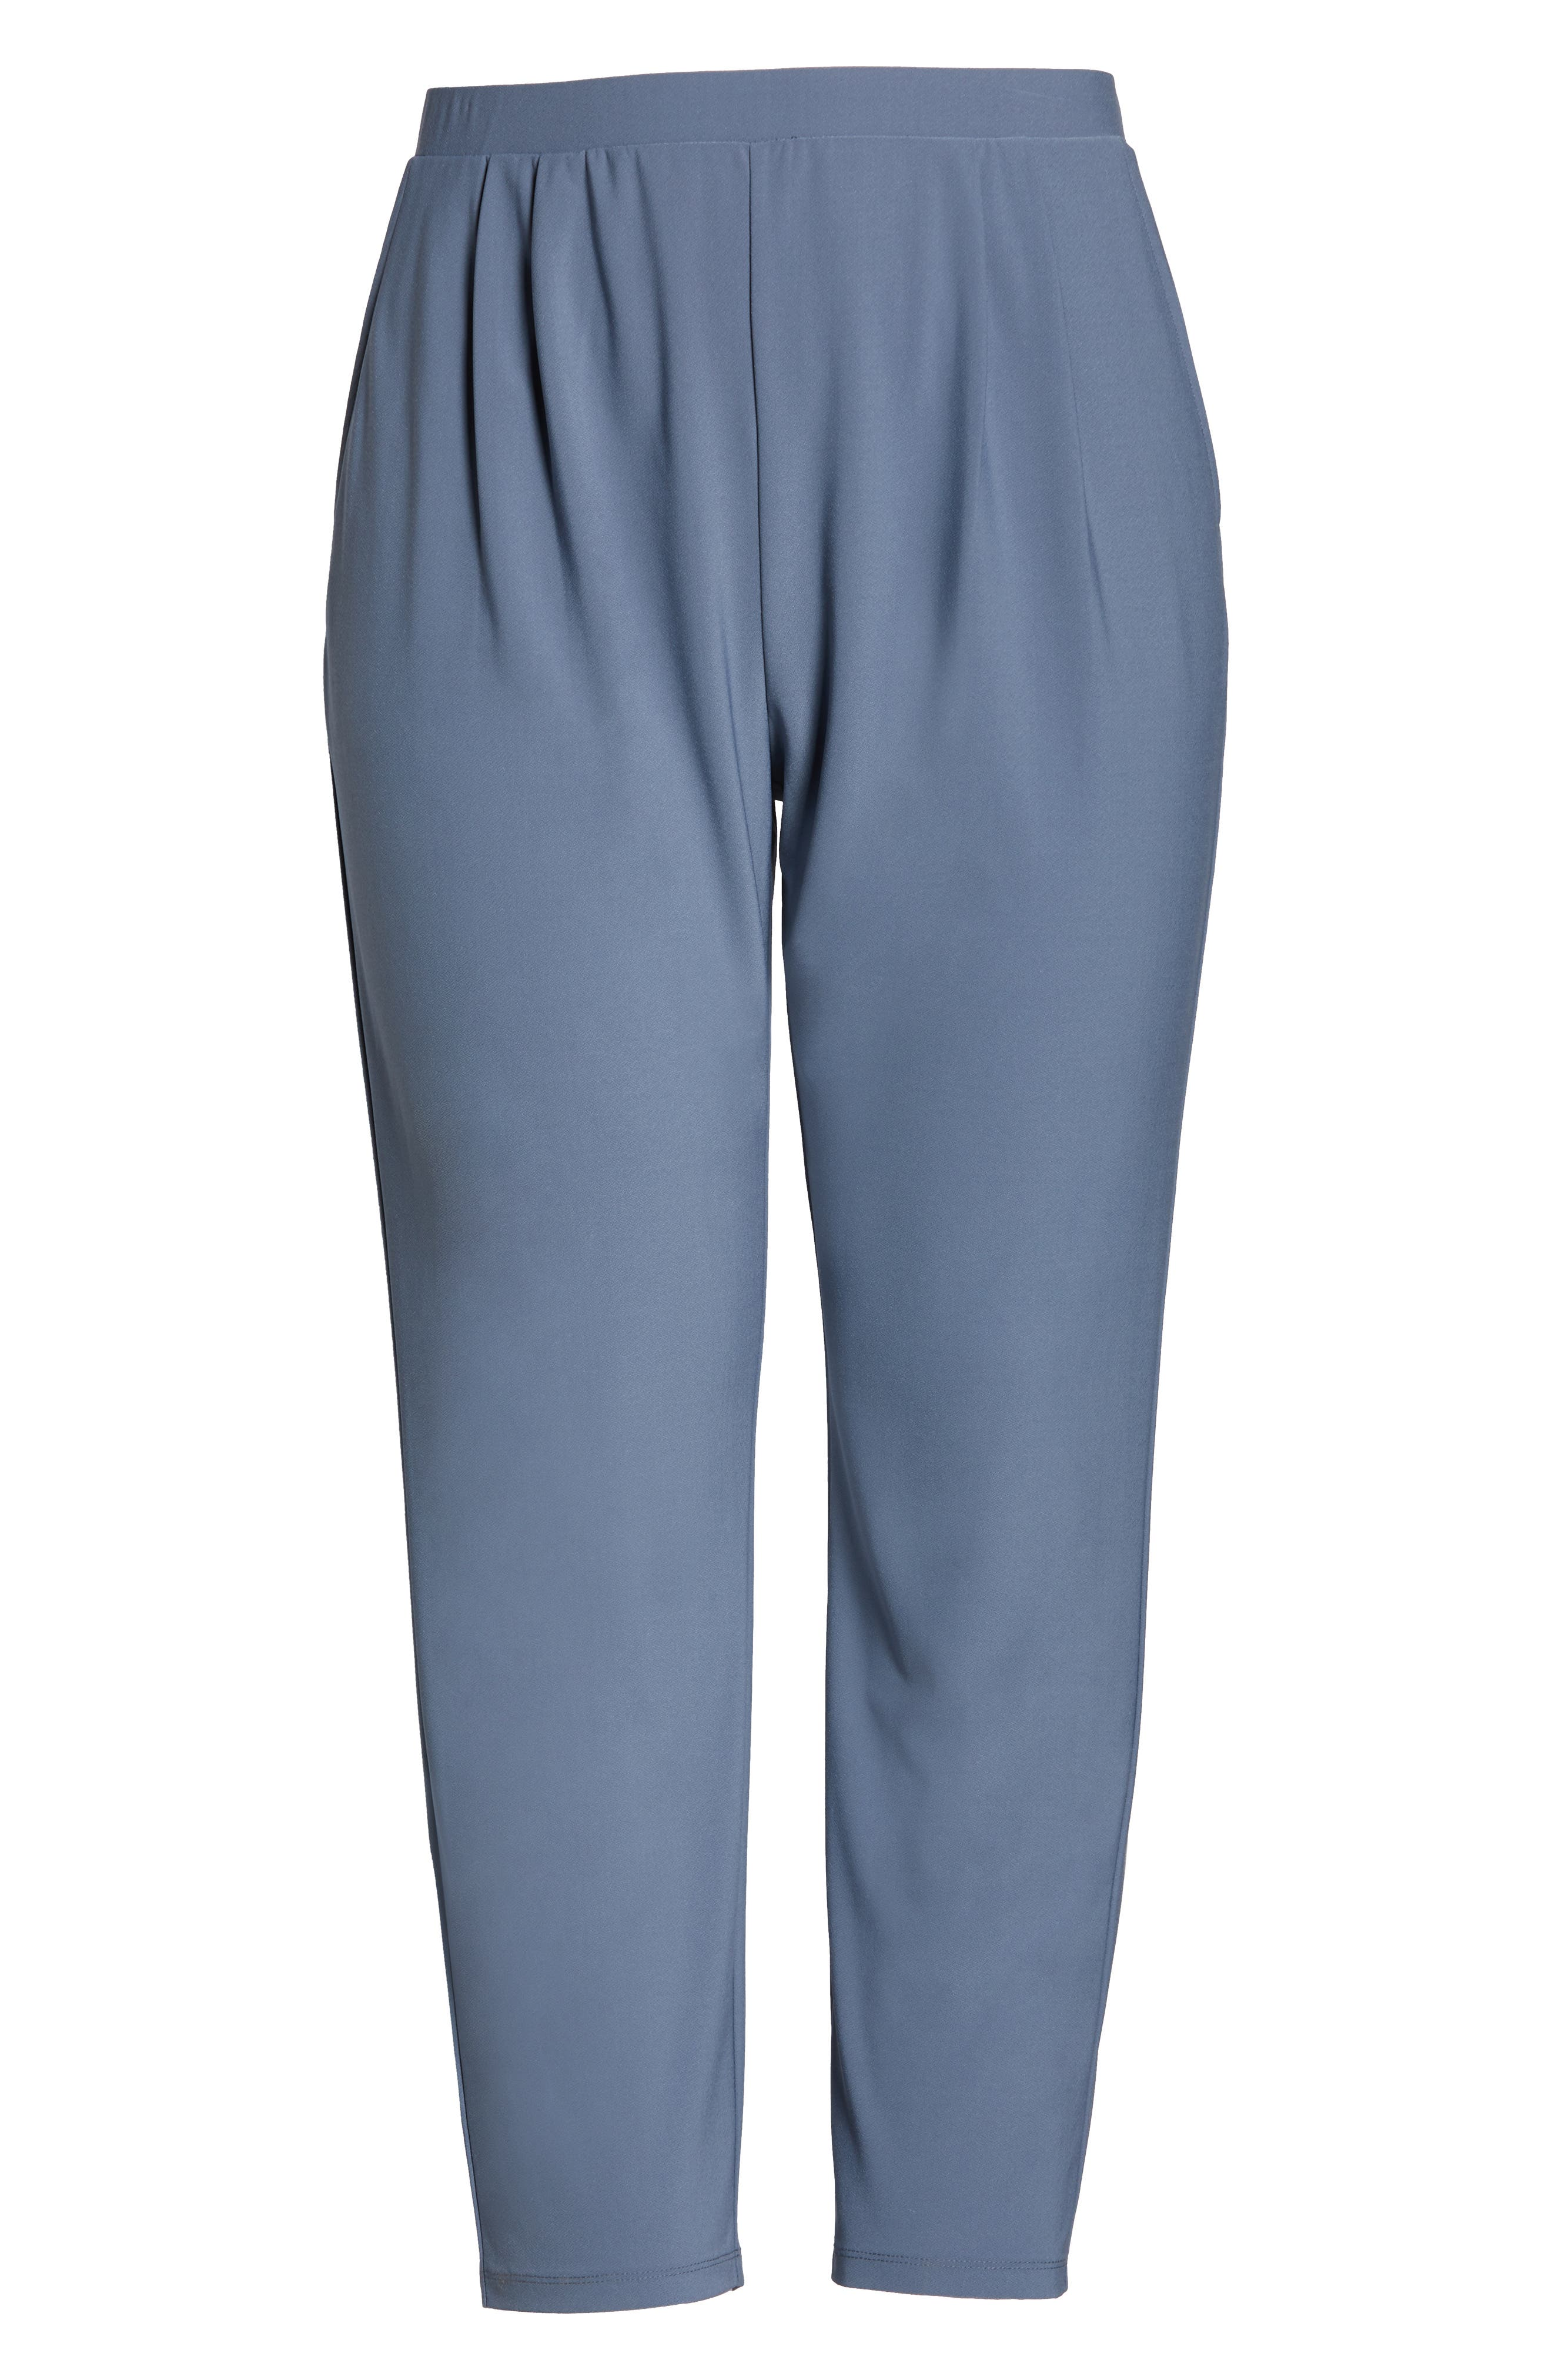 High Rise Pleated Pants,                             Alternate thumbnail 7, color,                             GREY GRISAILLE